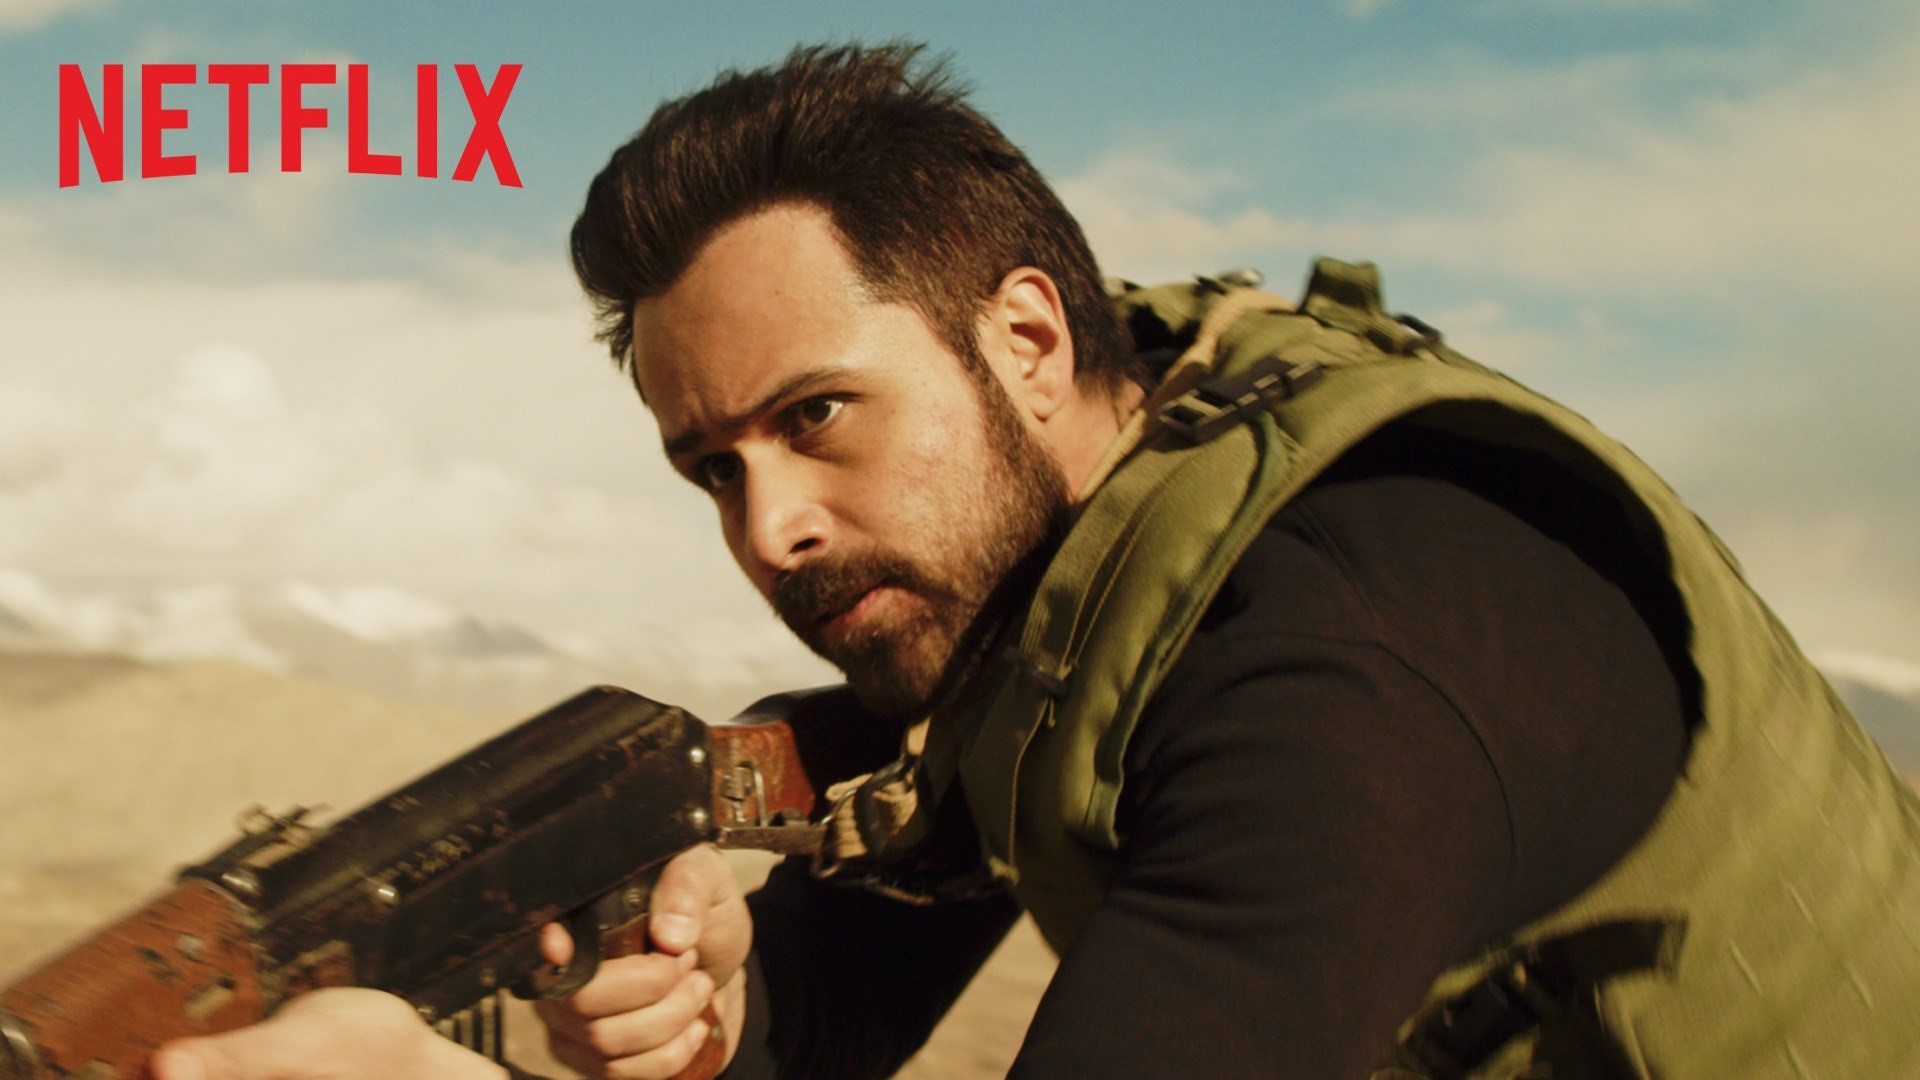 The trailer of our first Netflix series #BardOfBlood is here. A thrilling tale of espionage, vengeance, love and duty. Hope u enjoy it... Bard of Blood, 27th September.  Red Chillies Entertainment Emraan Hashmi Gaurav Verma Bilal Siddiqi #RibhuDasgupta